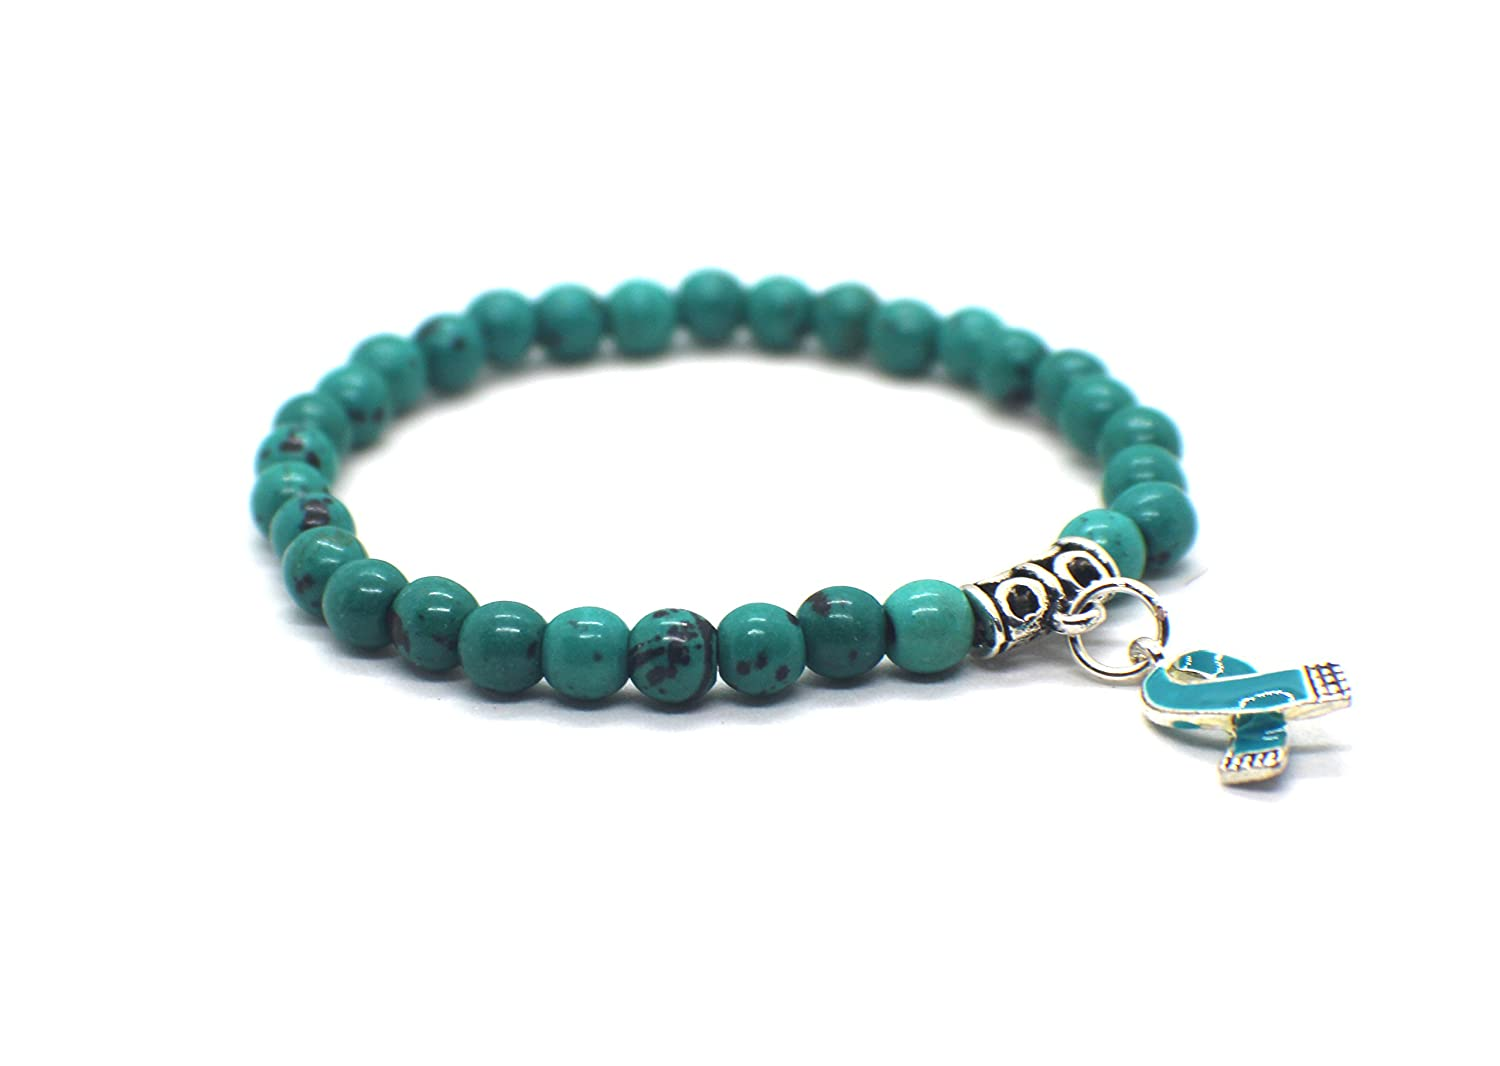 anti bracelet bullying charm ocd awareness il ovarian fullxfull cancer teal zoom listing